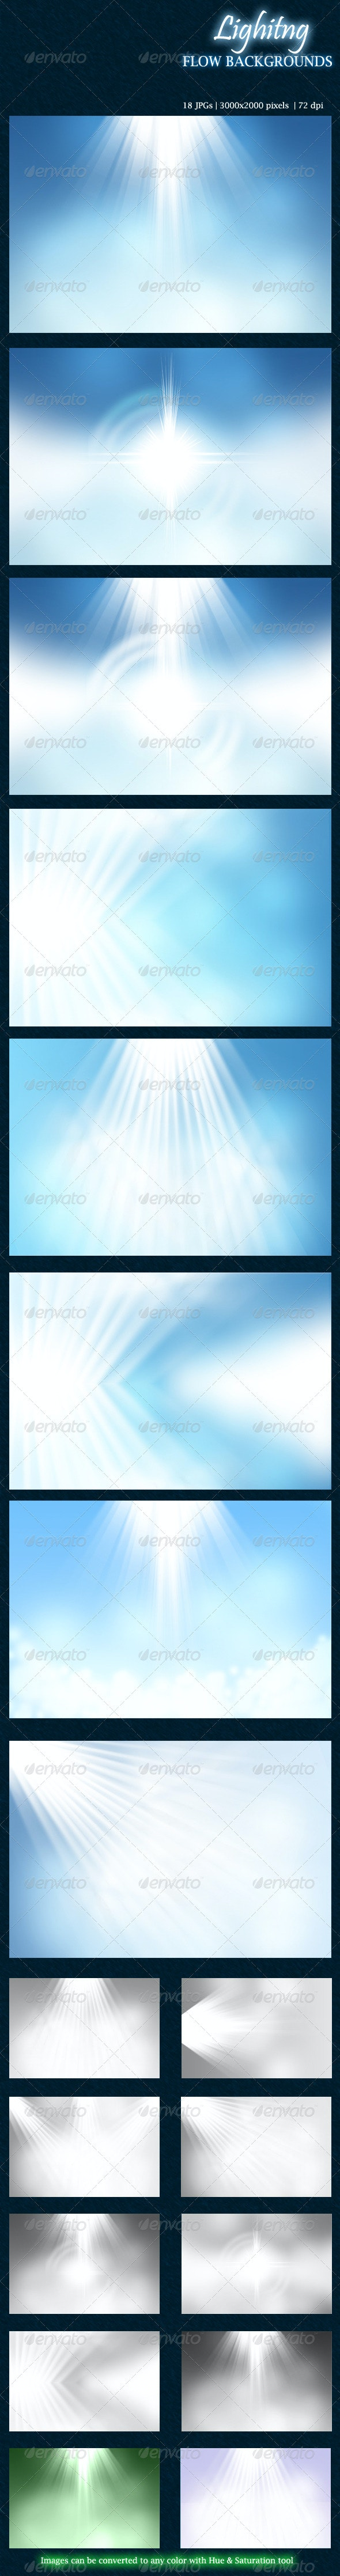 Lighting Flow Backgrounds - Abstract Backgrounds